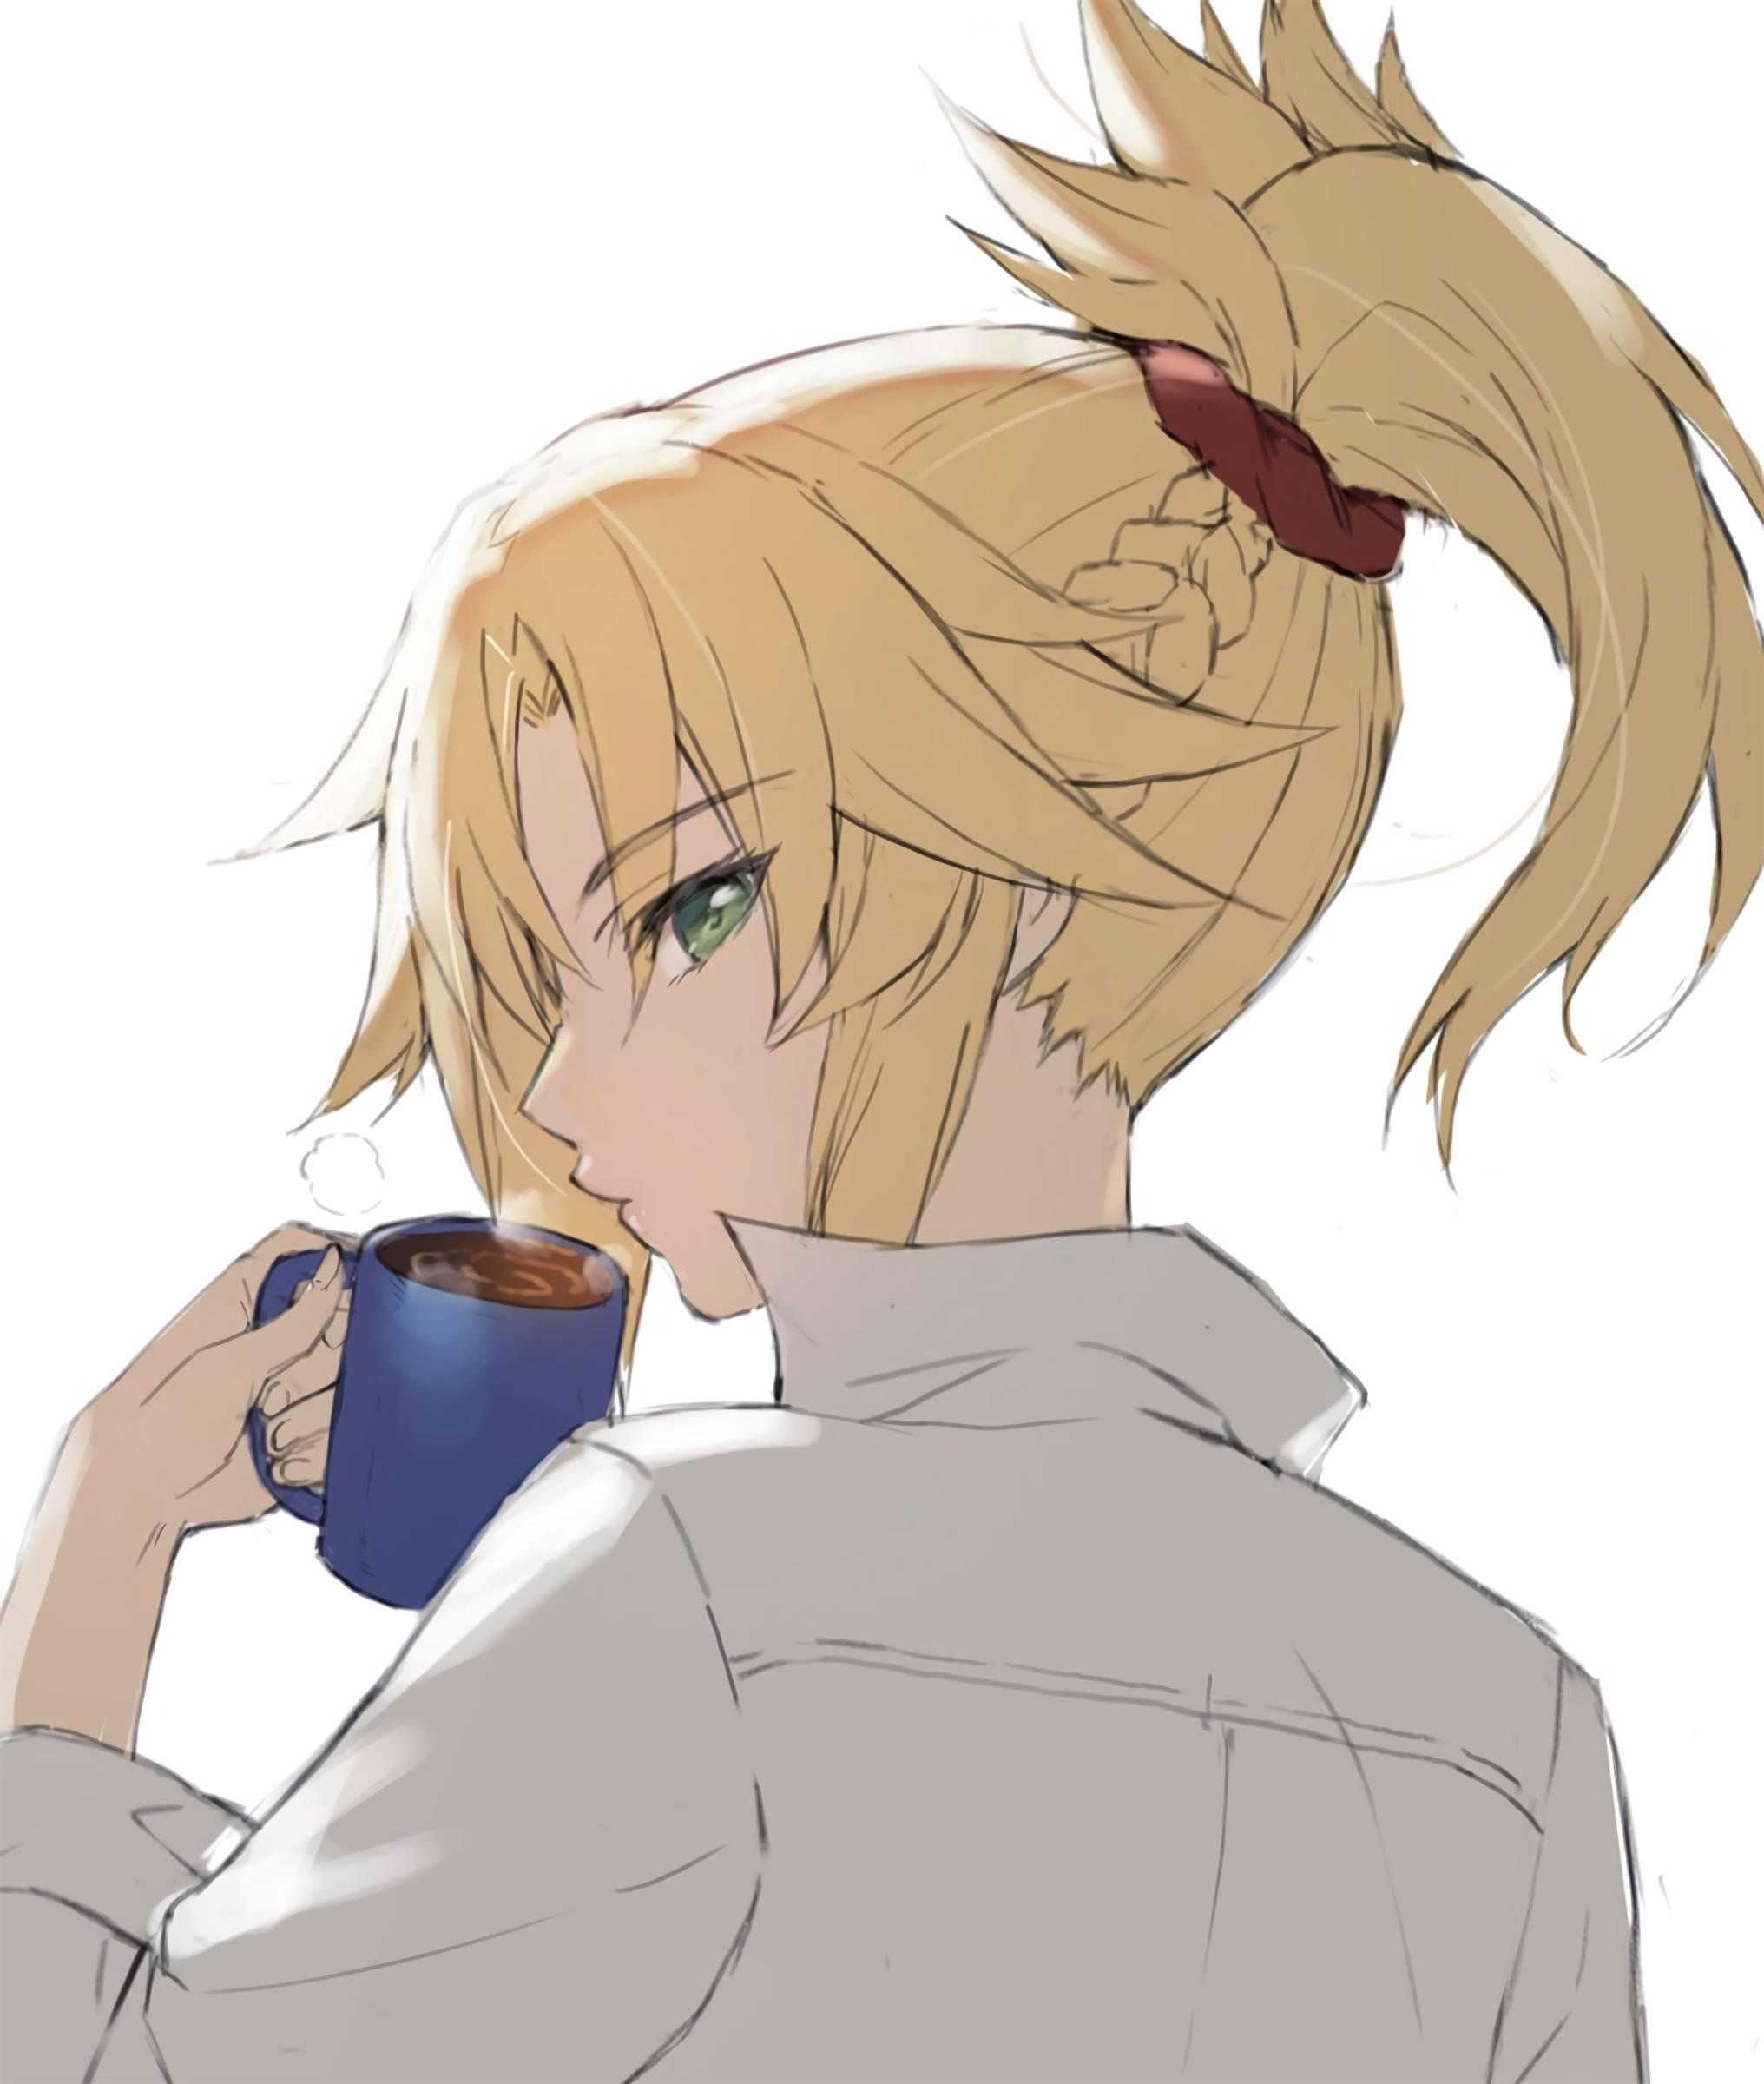 Mordred having her morning coffee saber fate anime